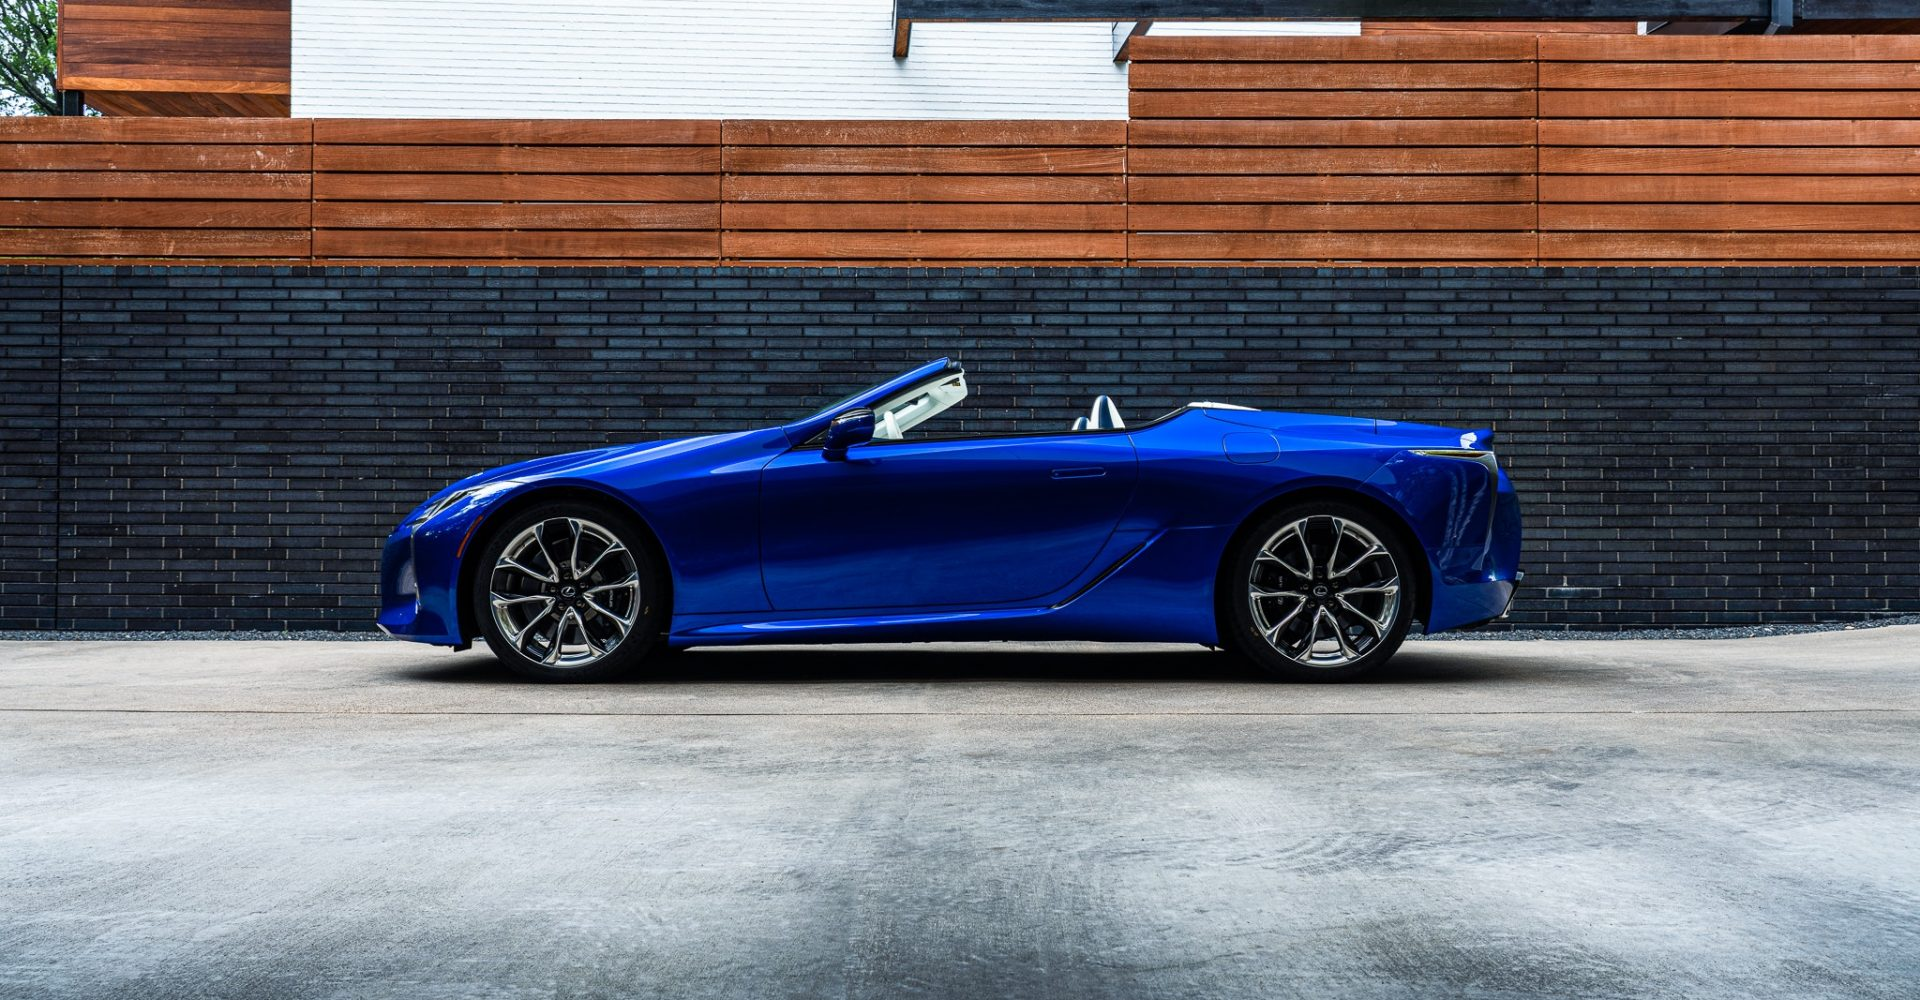 Marina-themed Regatta Edition launches Lexus LC500 Convertible reservations